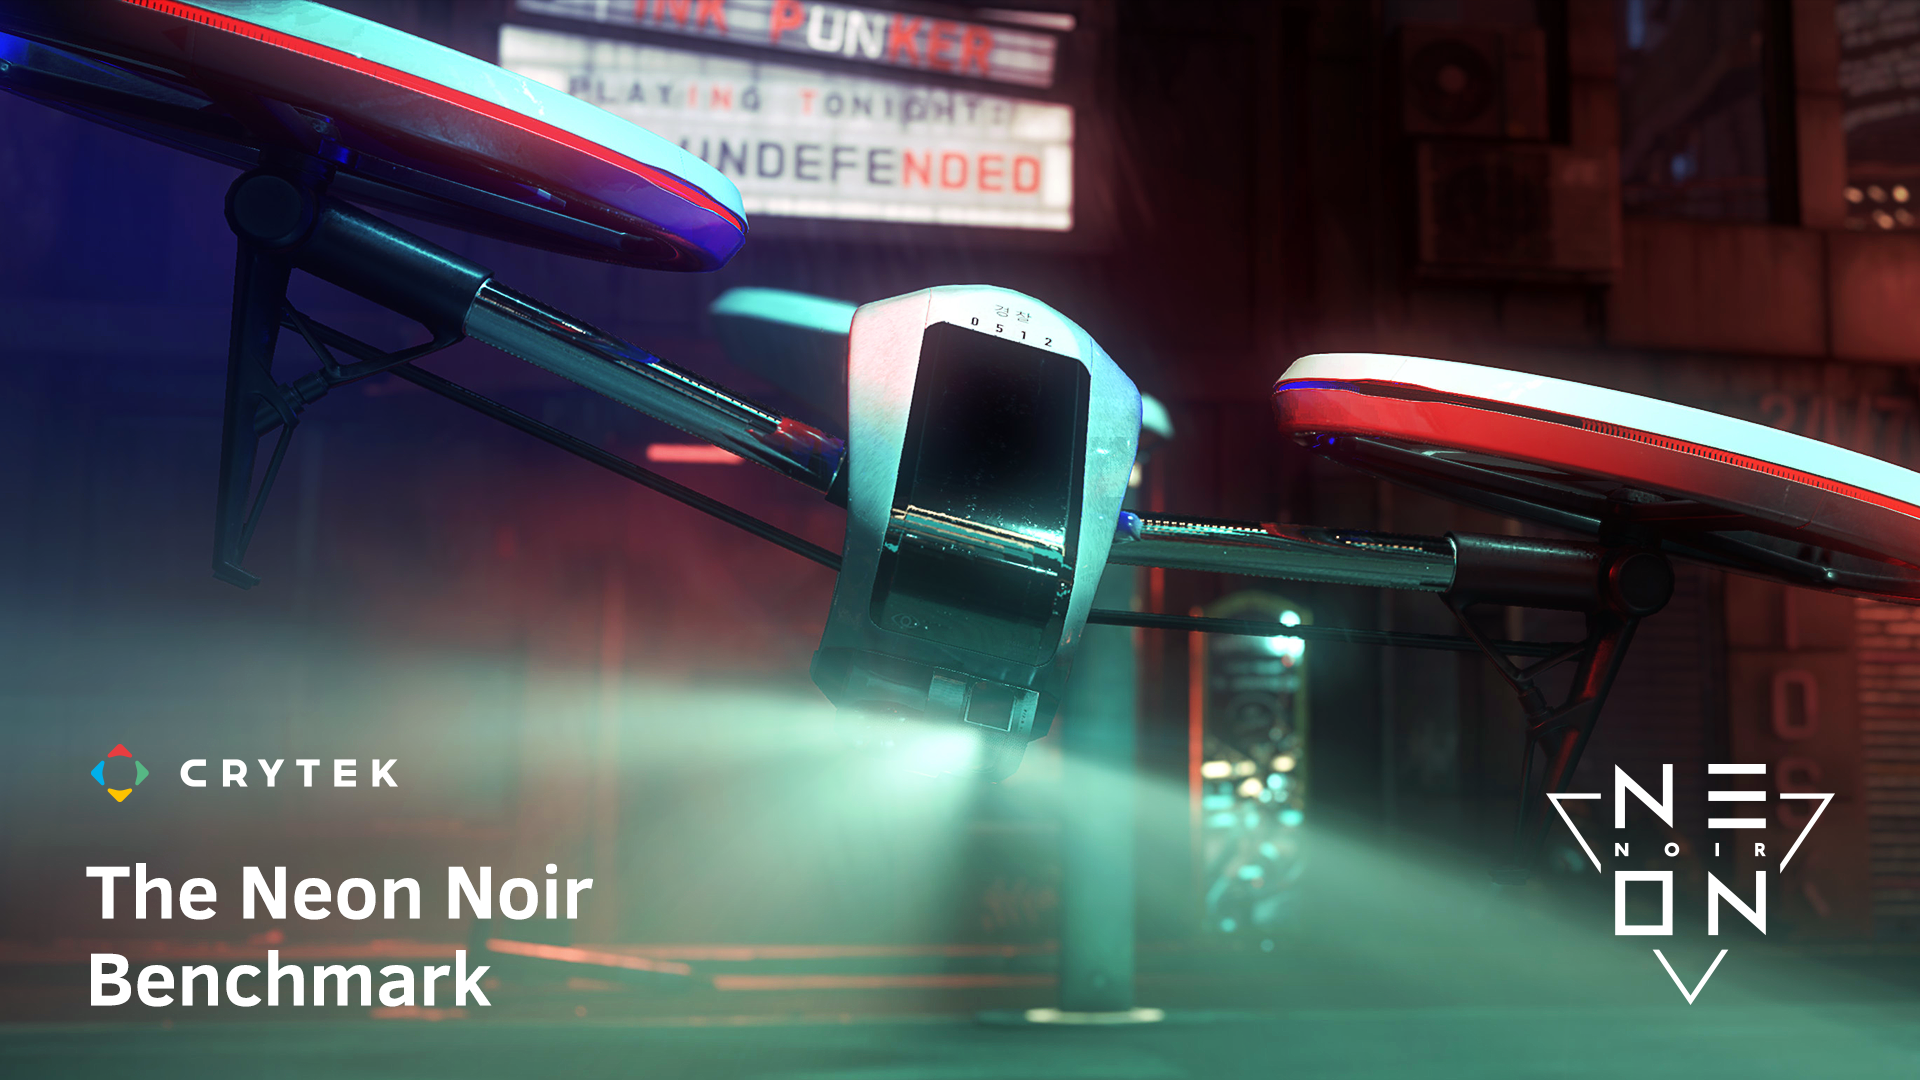 The Neon Noir Benchmark cover art showing drone